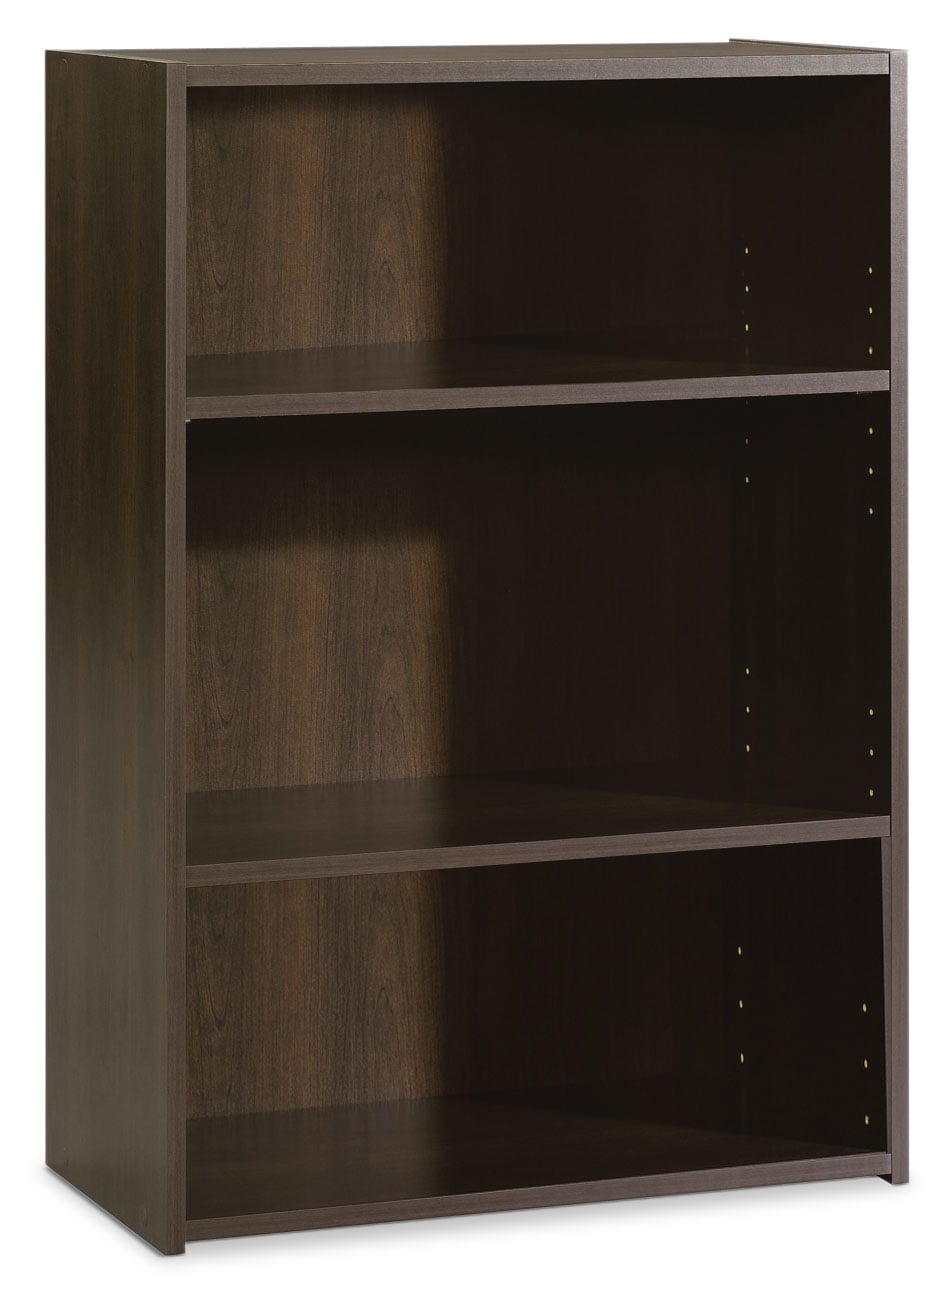 Accent and Occasional Furniture - Boston 3-Shelf Bookcase